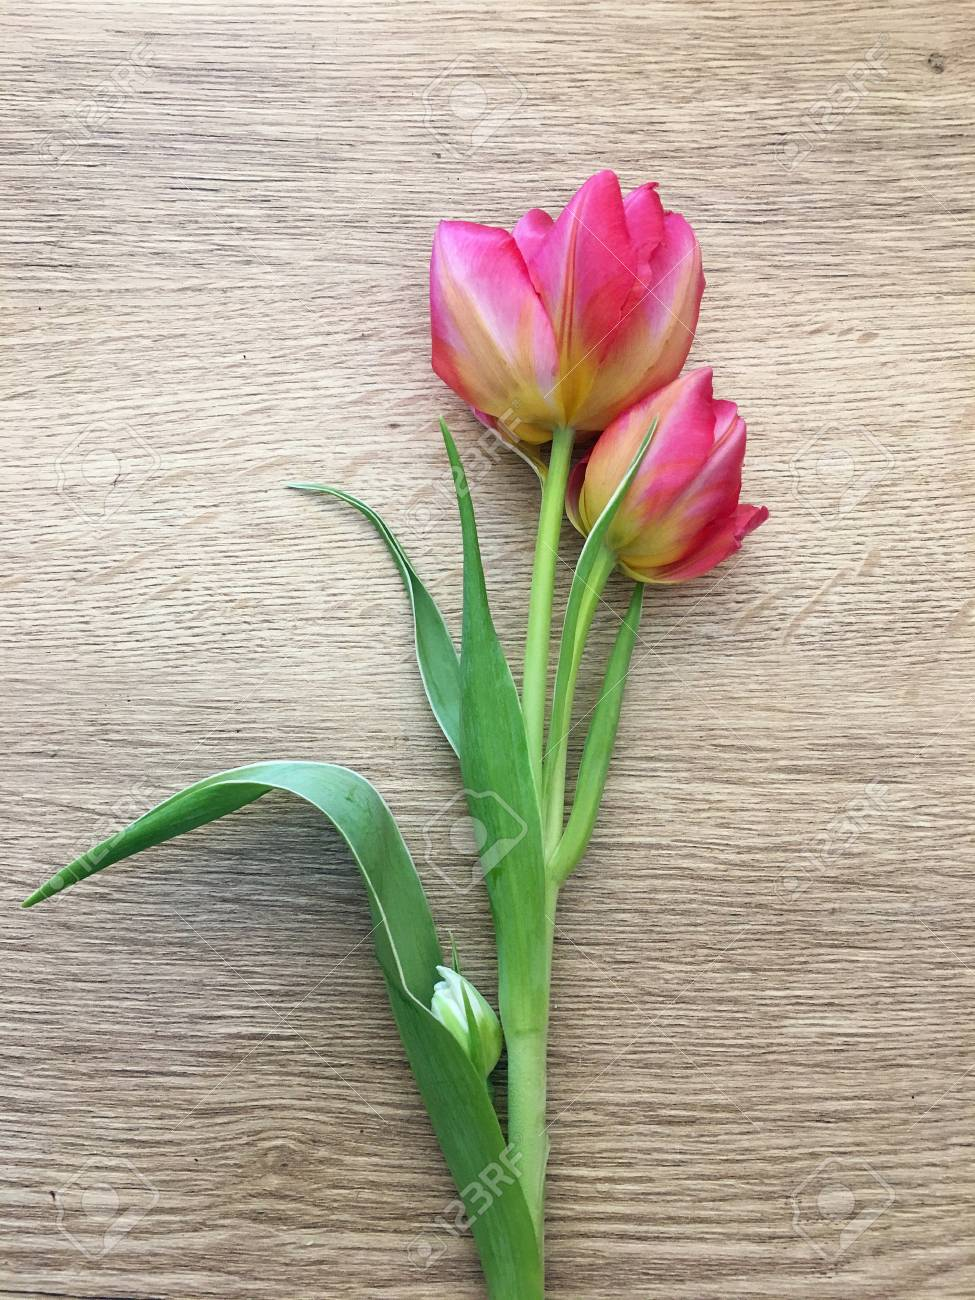 Tulips on a wooden background. Flora, gardening and plant concept - close up of tulip flowers on wooden table. - 121294381